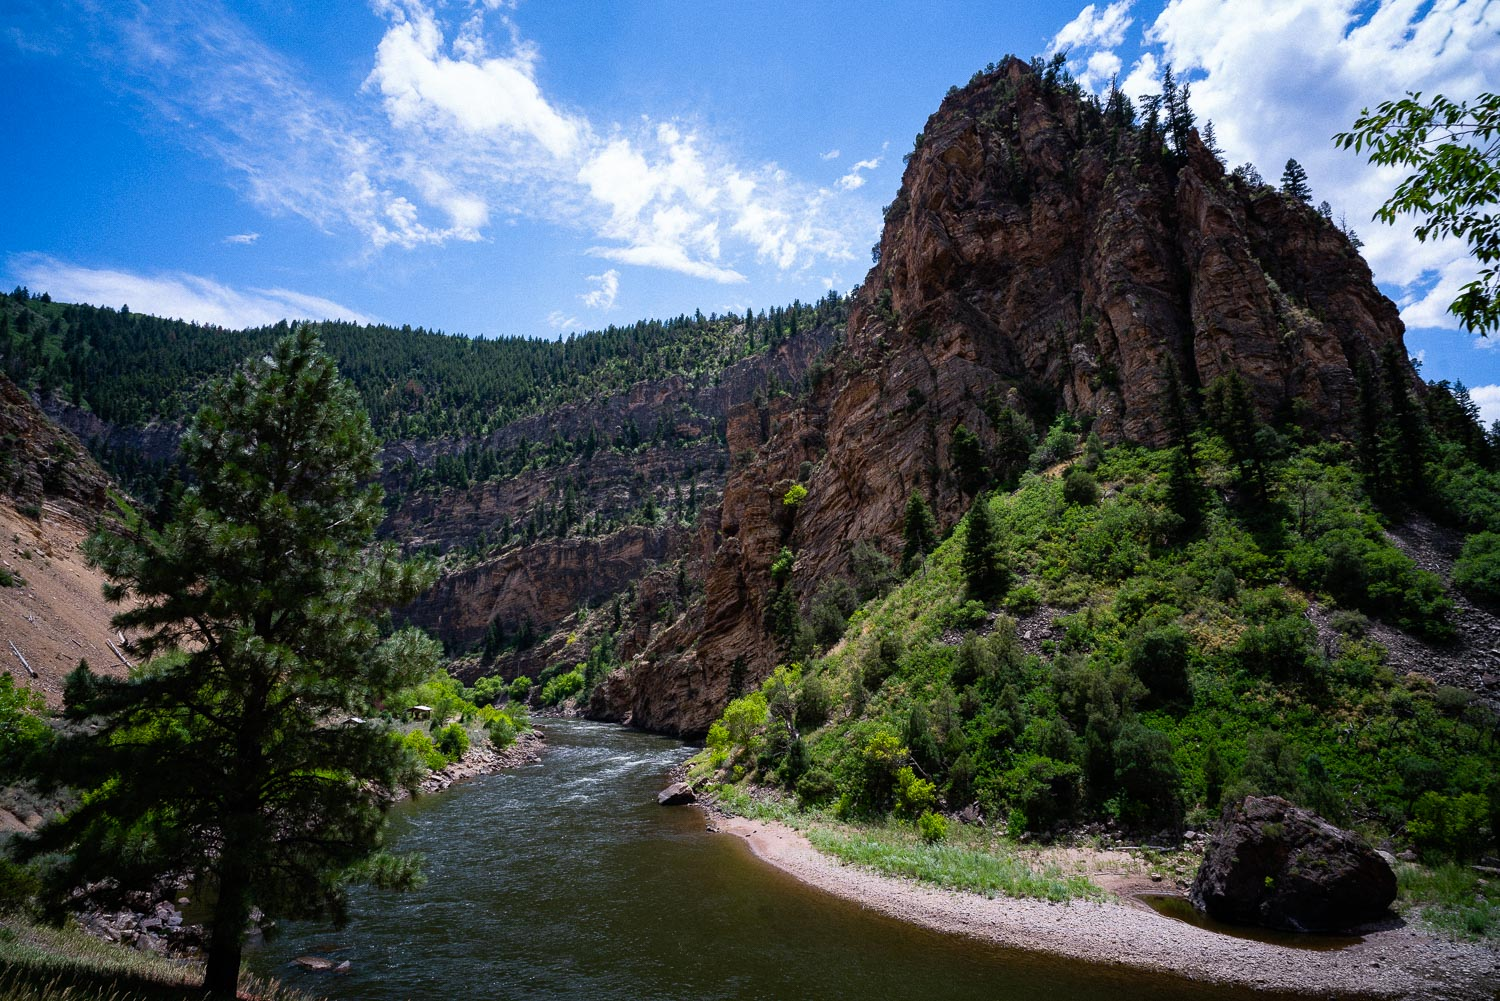 Glenwood Canyon. So many great hikes in here and an amazing bike trail along the Colorado River the whole length of the gorge.